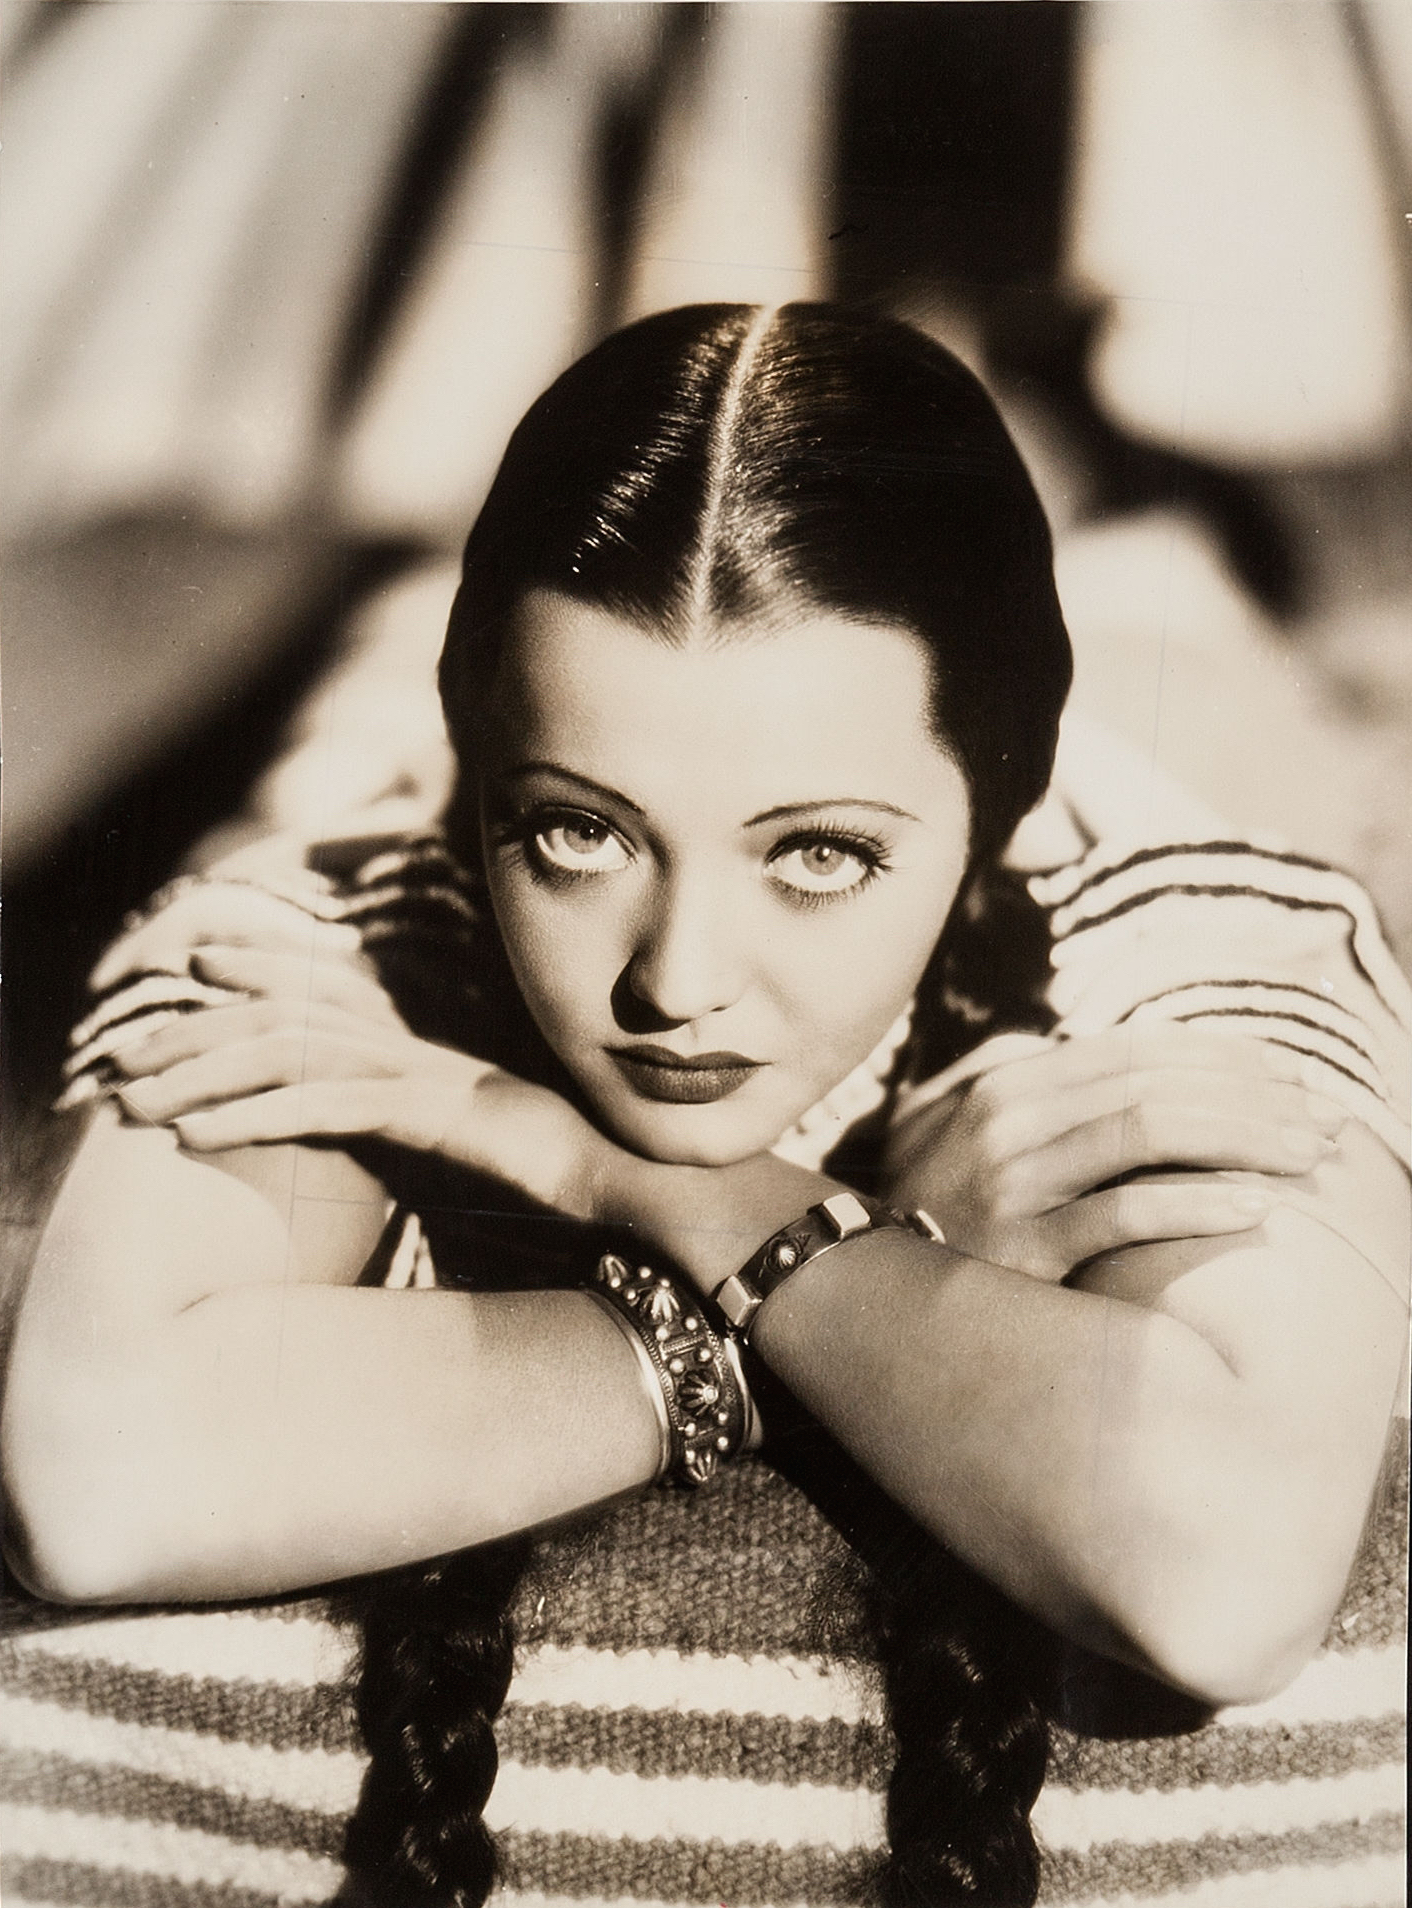 Discussion on this topic: Maude Turner Gordon, sylvia-sidney/